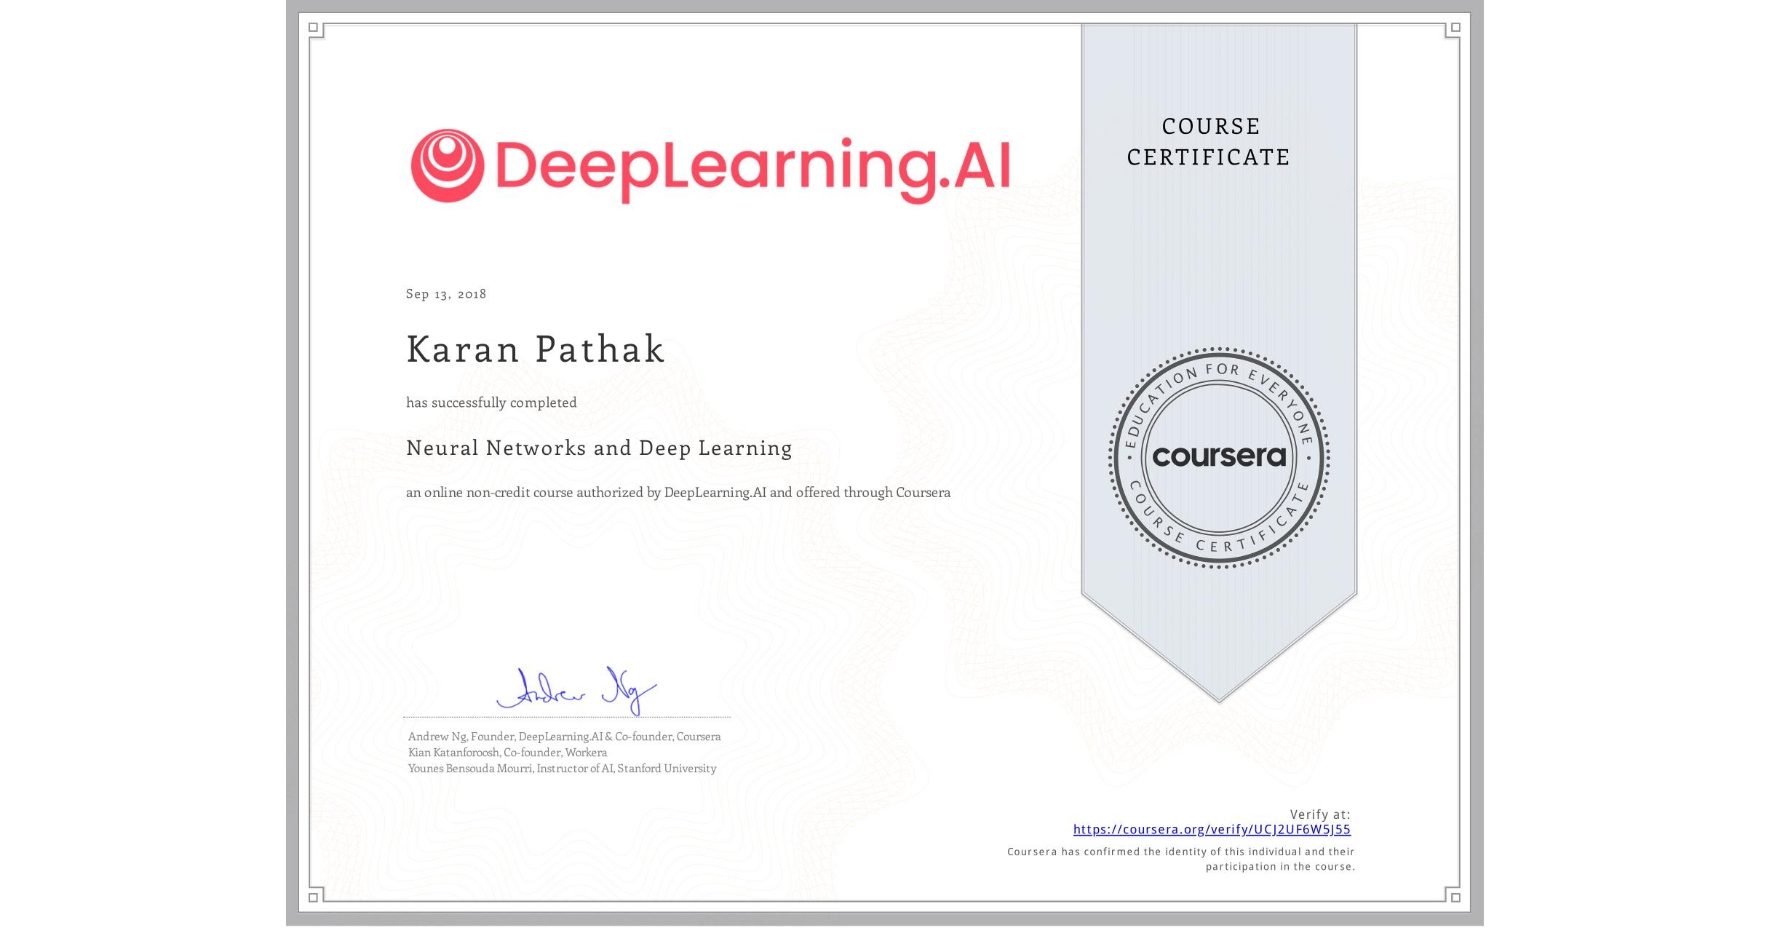 View certificate for Karan Pathak, Neural Networks and Deep Learning, an online non-credit course authorized by DeepLearning.AI and offered through Coursera